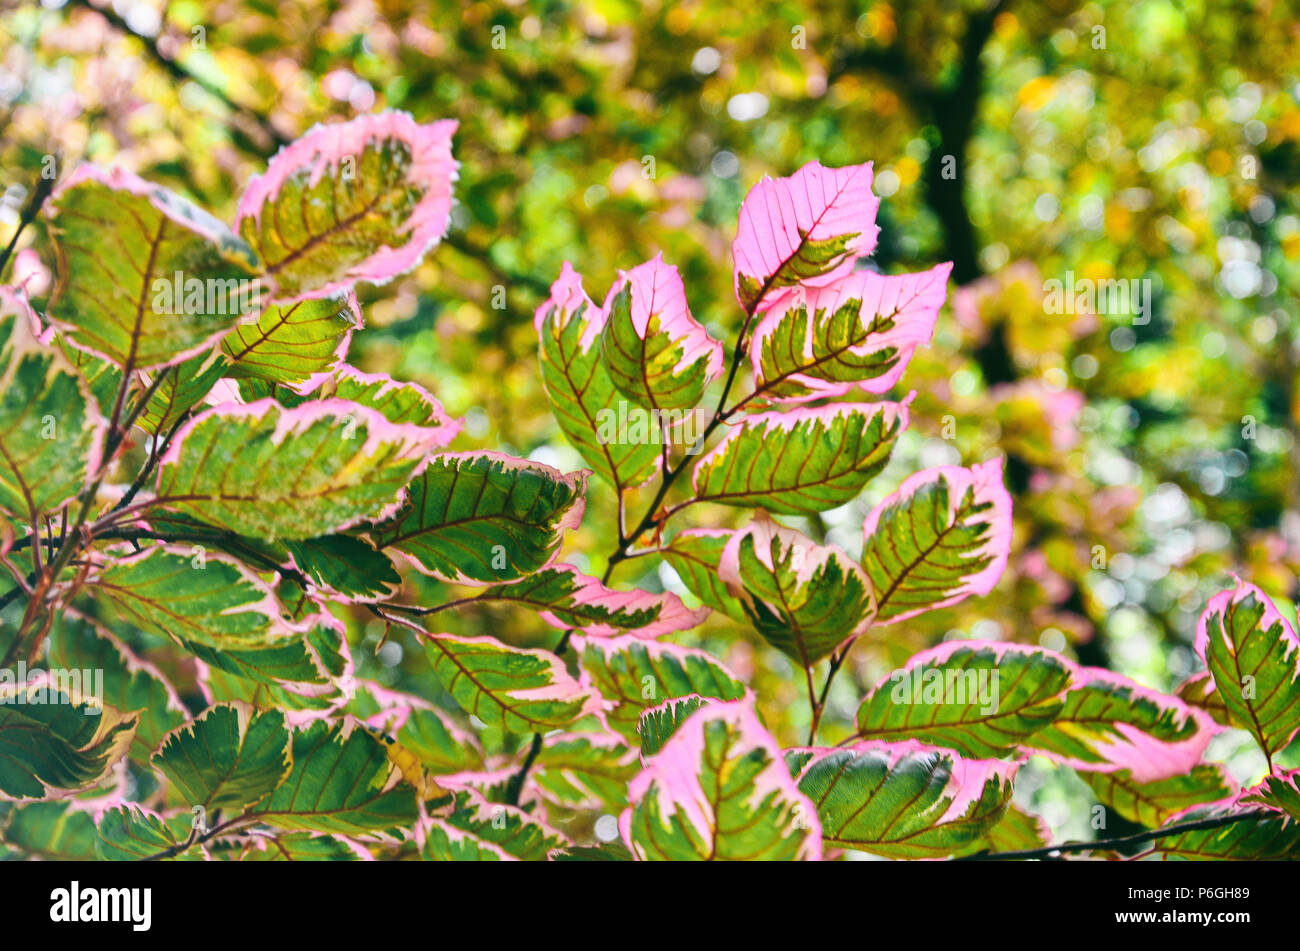 Colorful leaves of a tricolor european beech tree, Fagus sylvatica. - Stock Image